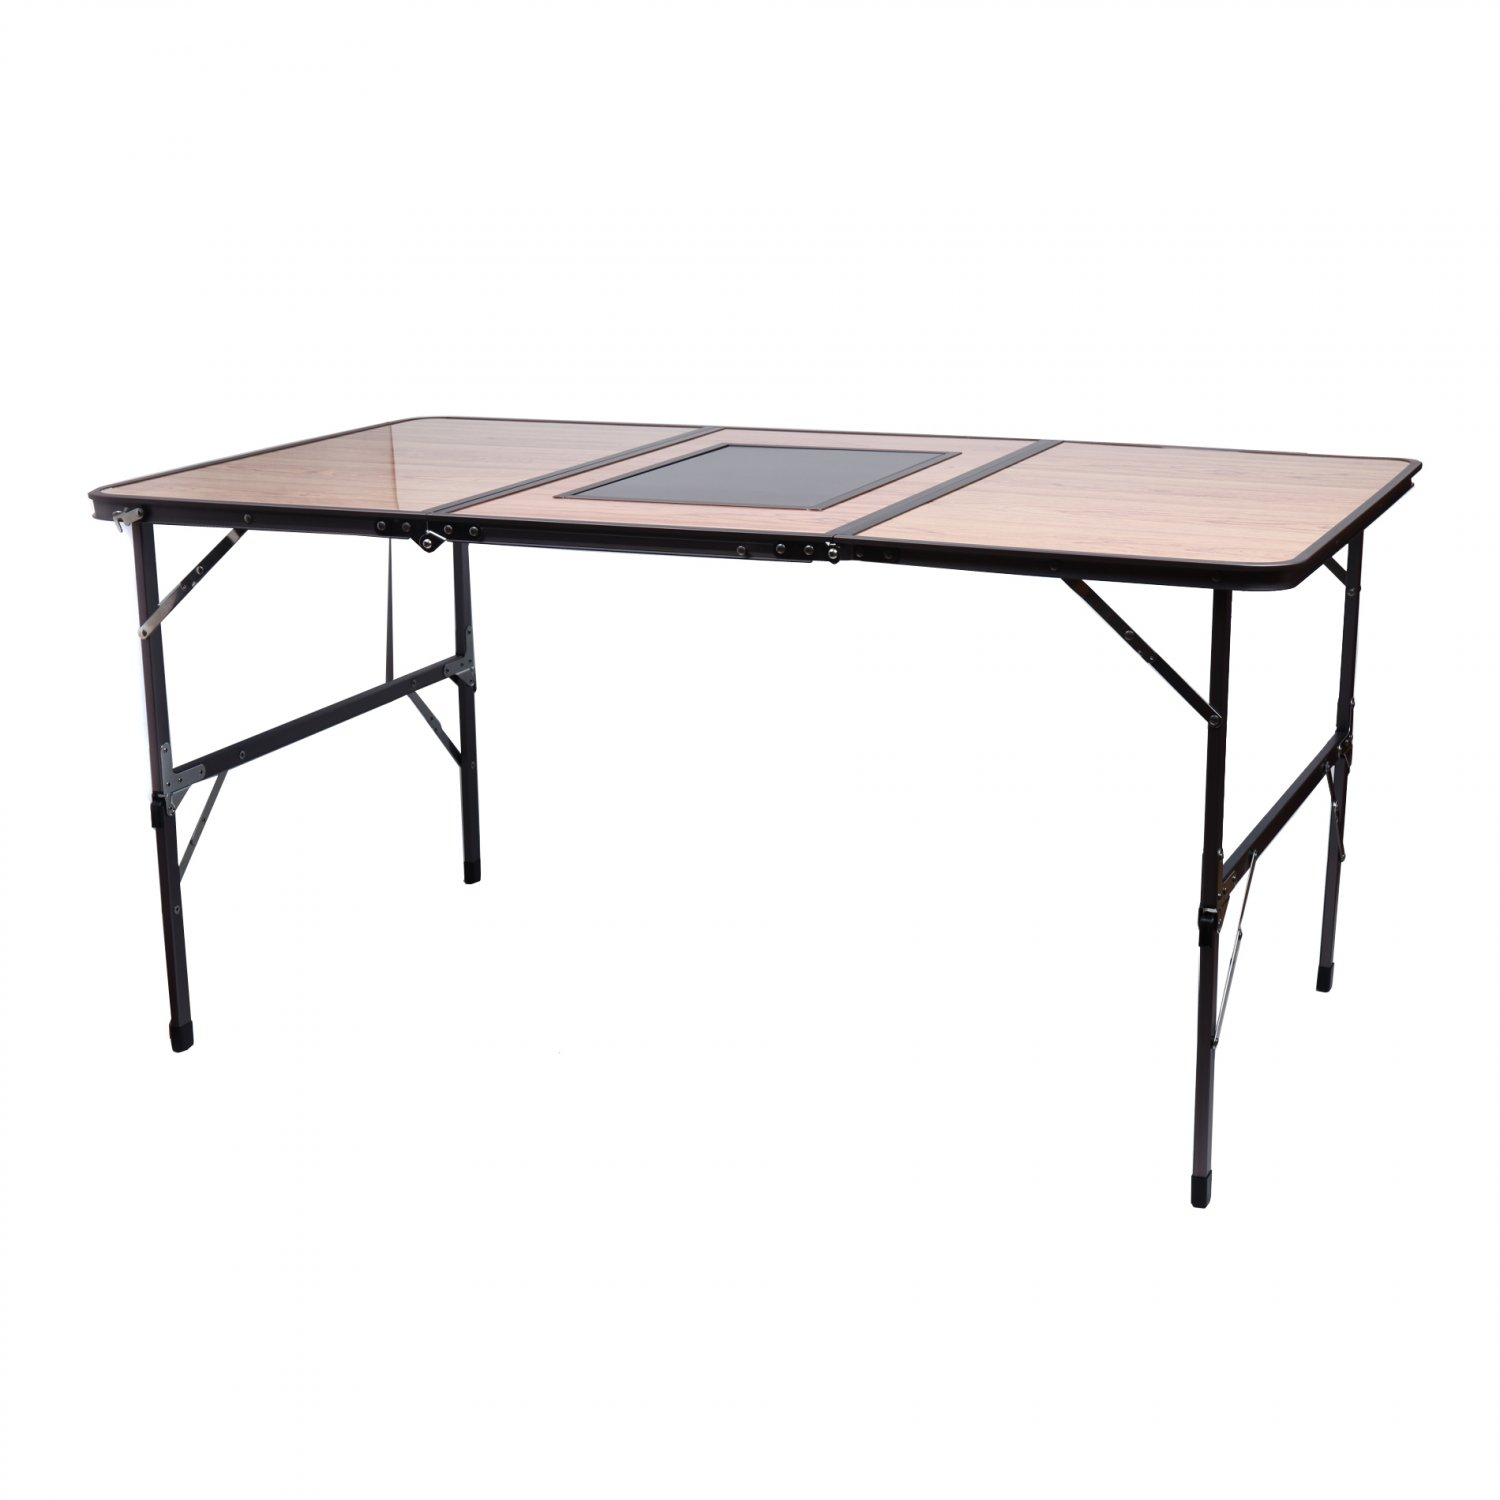 Garden Yard Outdoor Sturdy Portable 3 Side BBQ Folding Table(Ship US Only)SK-17140{4}